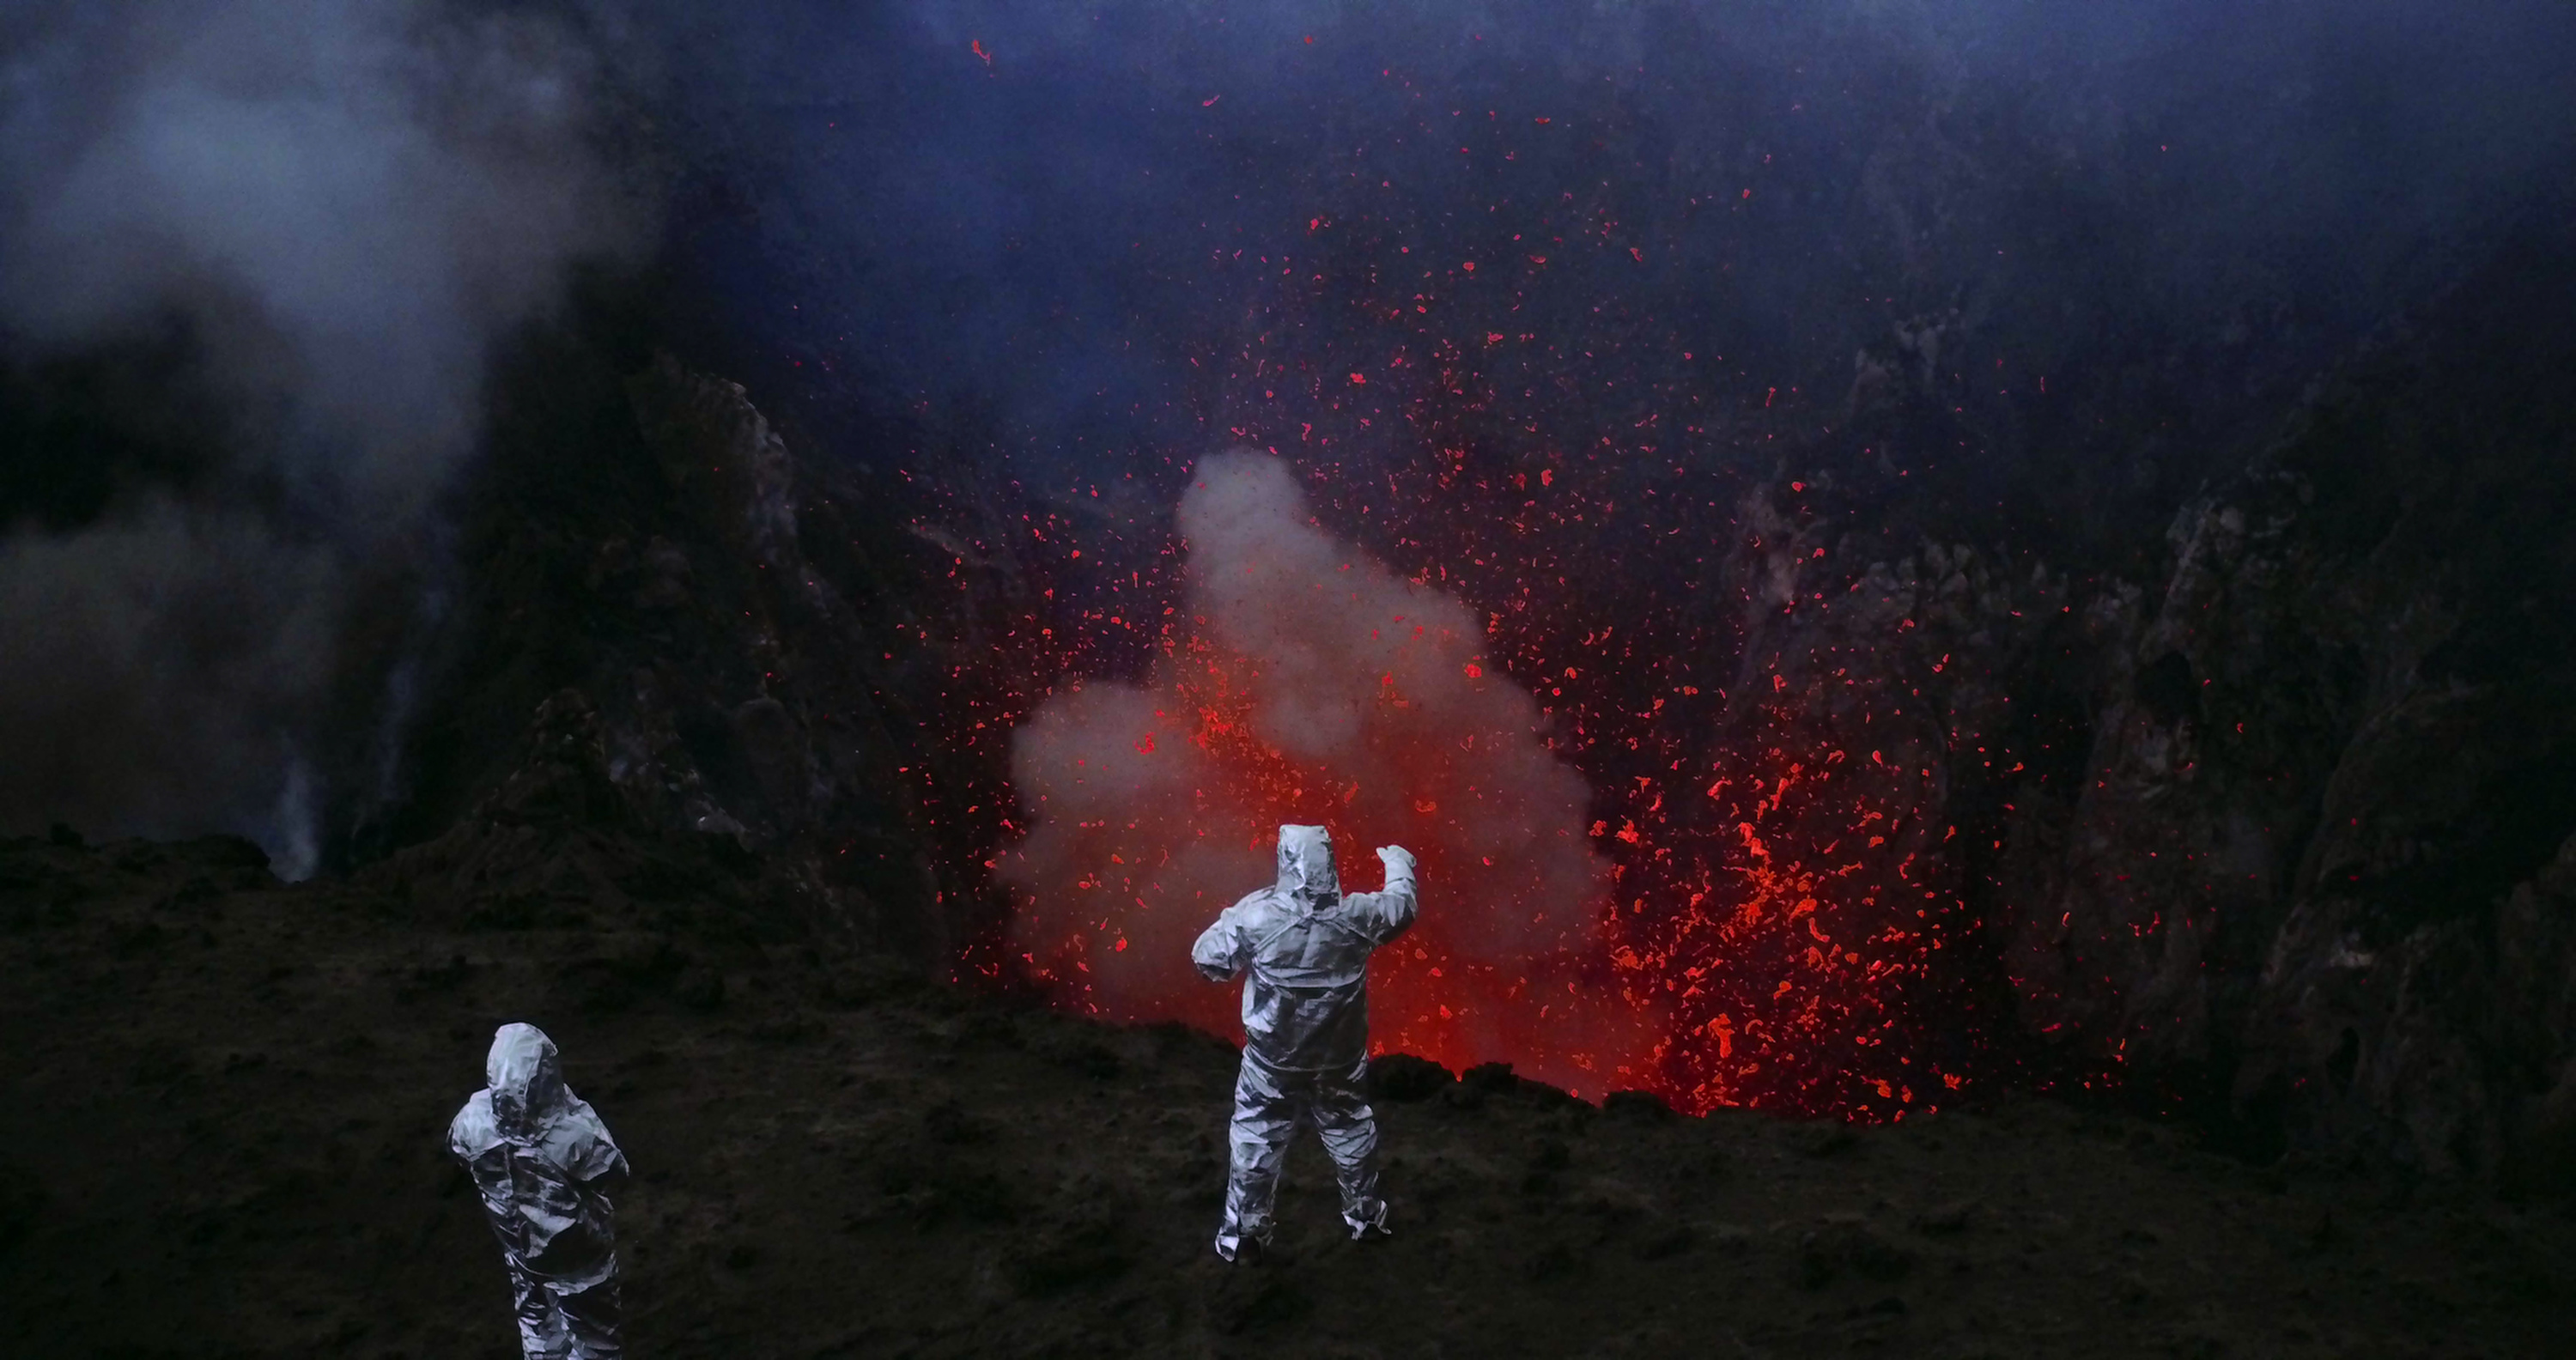 From 'Into the Inferno,' directed by Werner Herzog. Images courtesy of Netflix